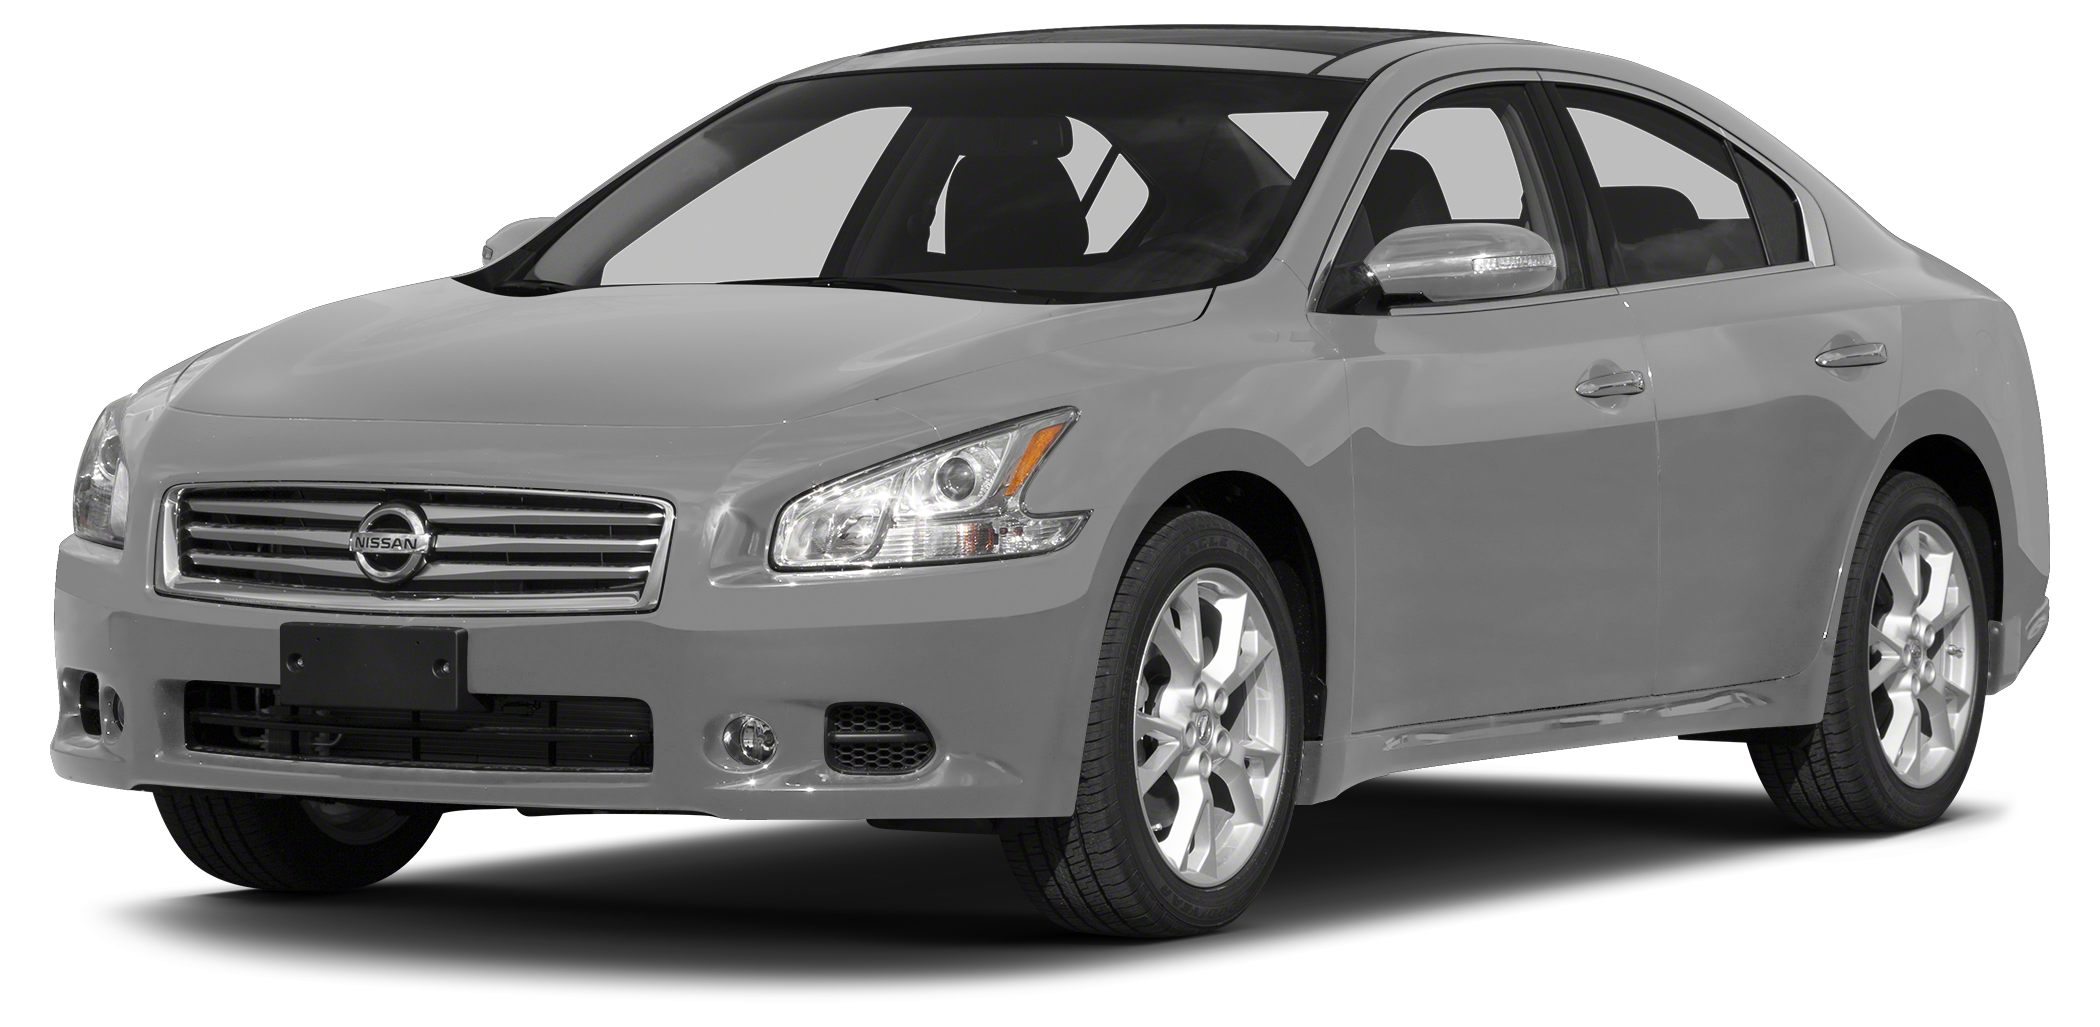 2013 Nissan Maxima 35 S ABS brakes CLEAN AUTOCHECK NO DAMAGE ONE OWNER REPORT Electronic Stabil